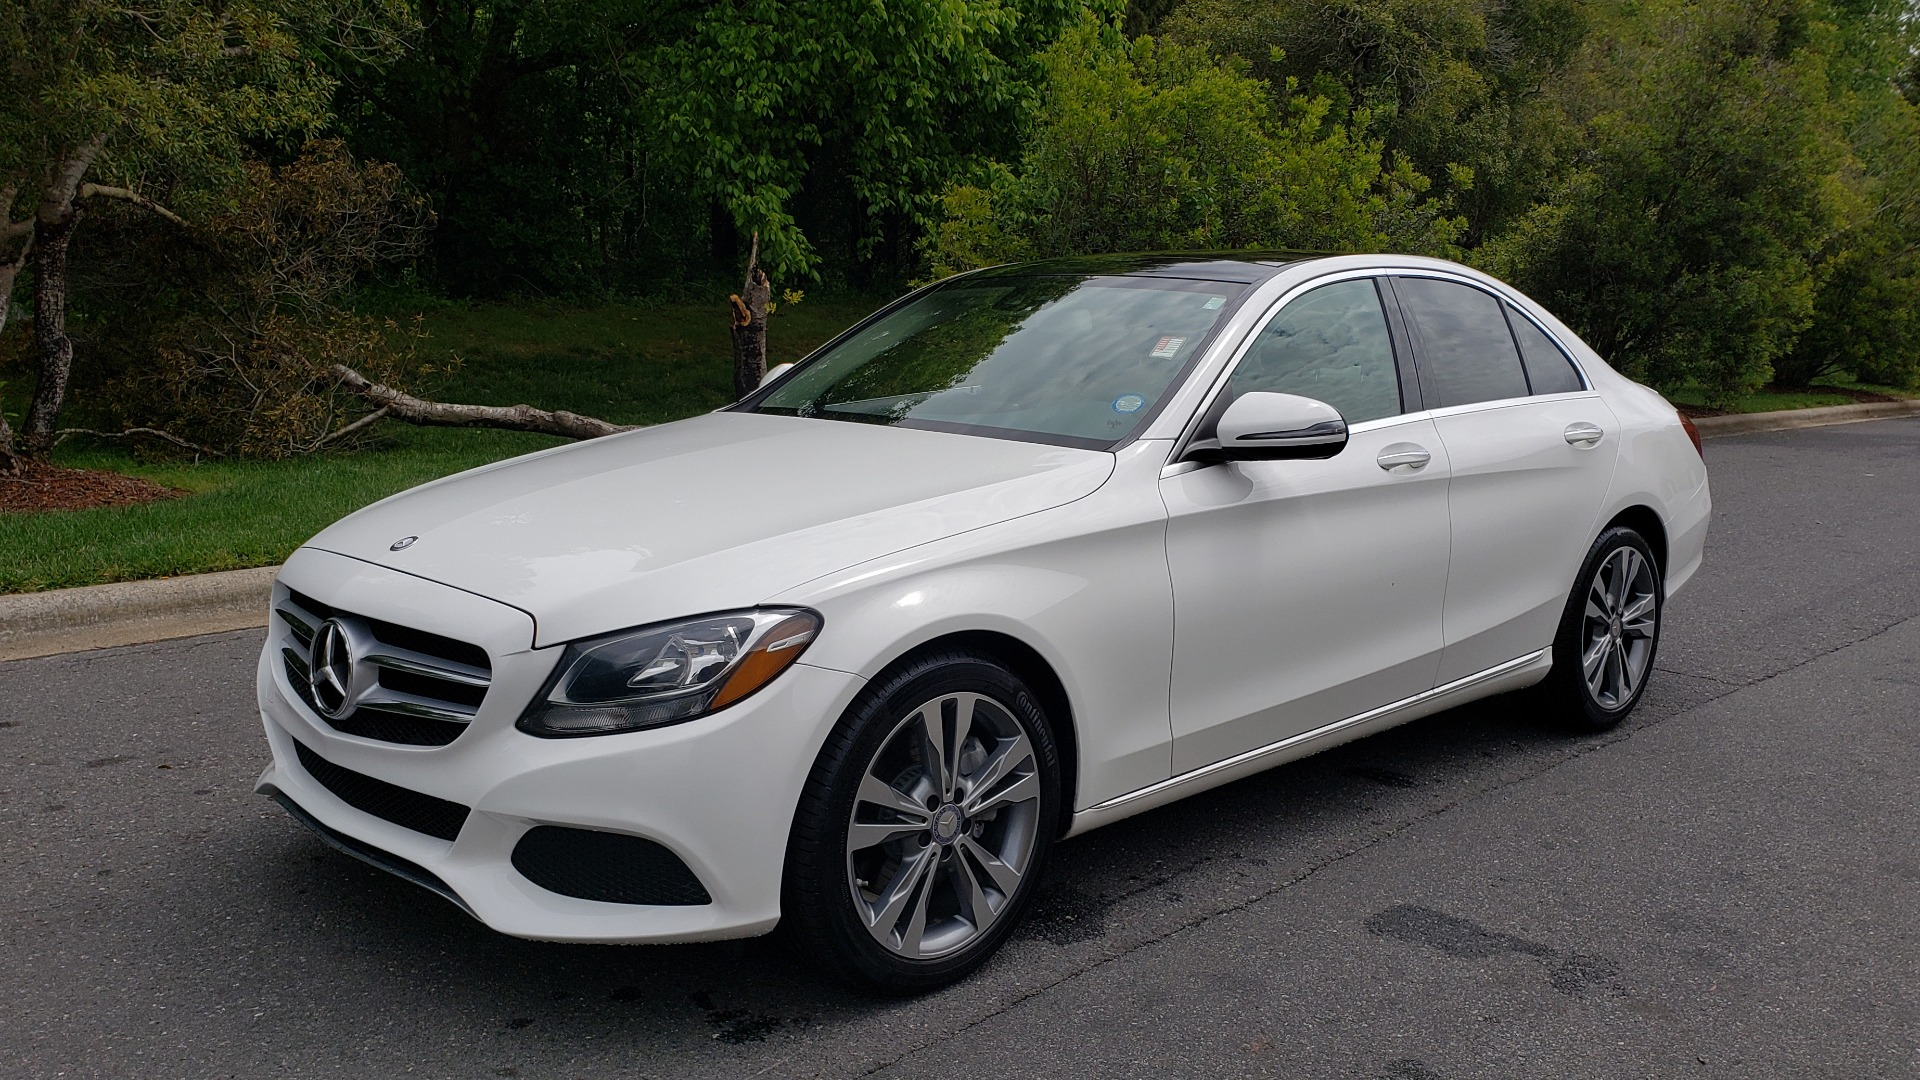 Used 2017 Mercedes-Benz C-Class C 300 PREMIUM / NAV / PANO-ROOF / HTD STS / REARVIEW for sale Sold at Formula Imports in Charlotte NC 28227 1